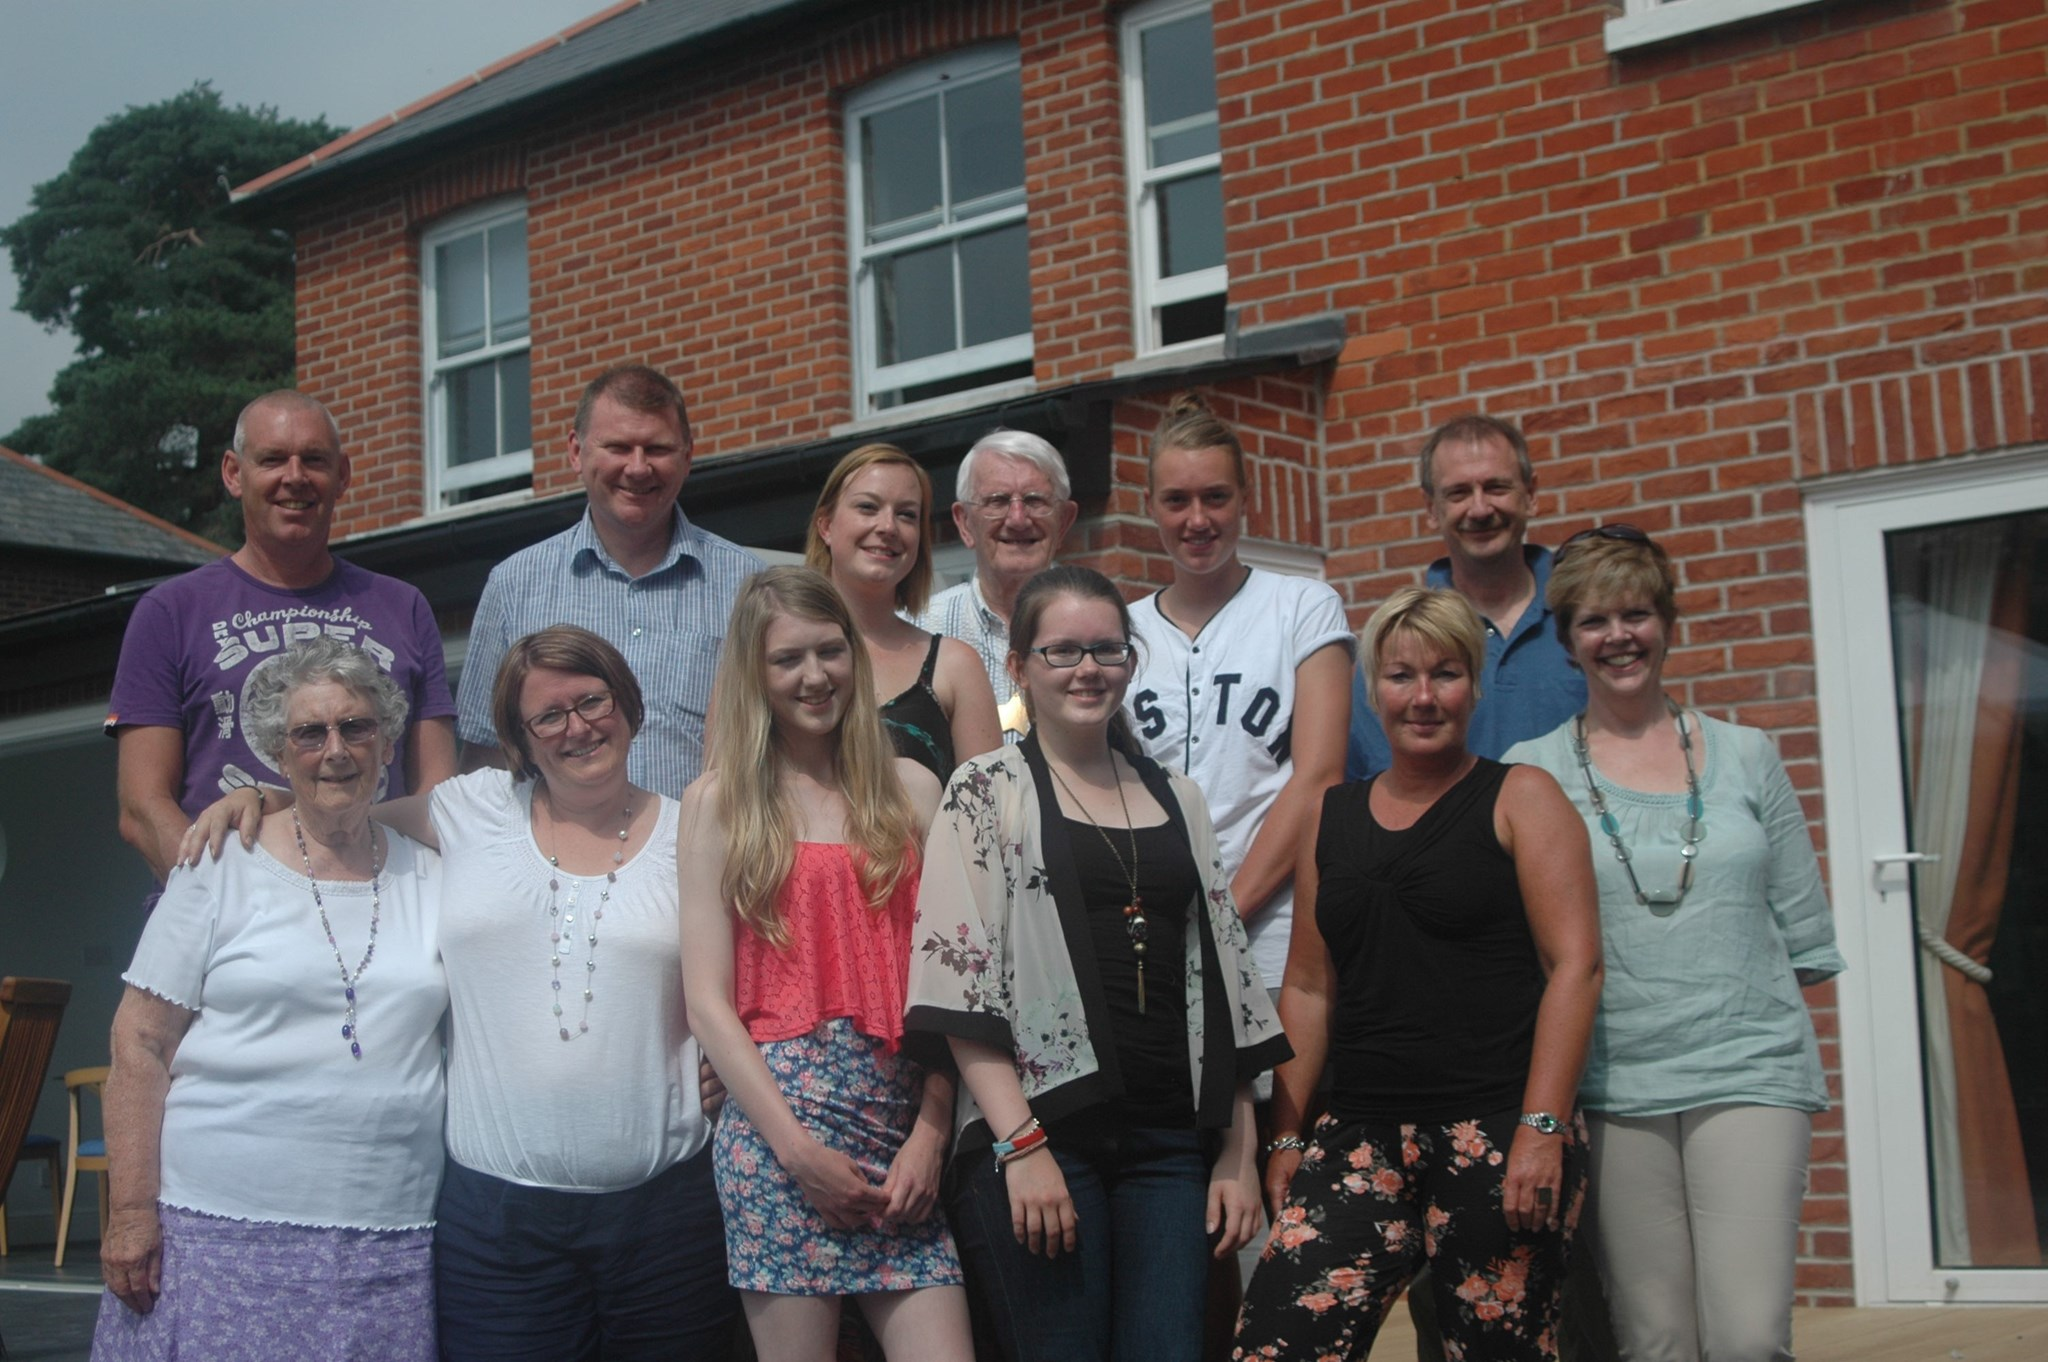 Family gathering for Neil's 85th